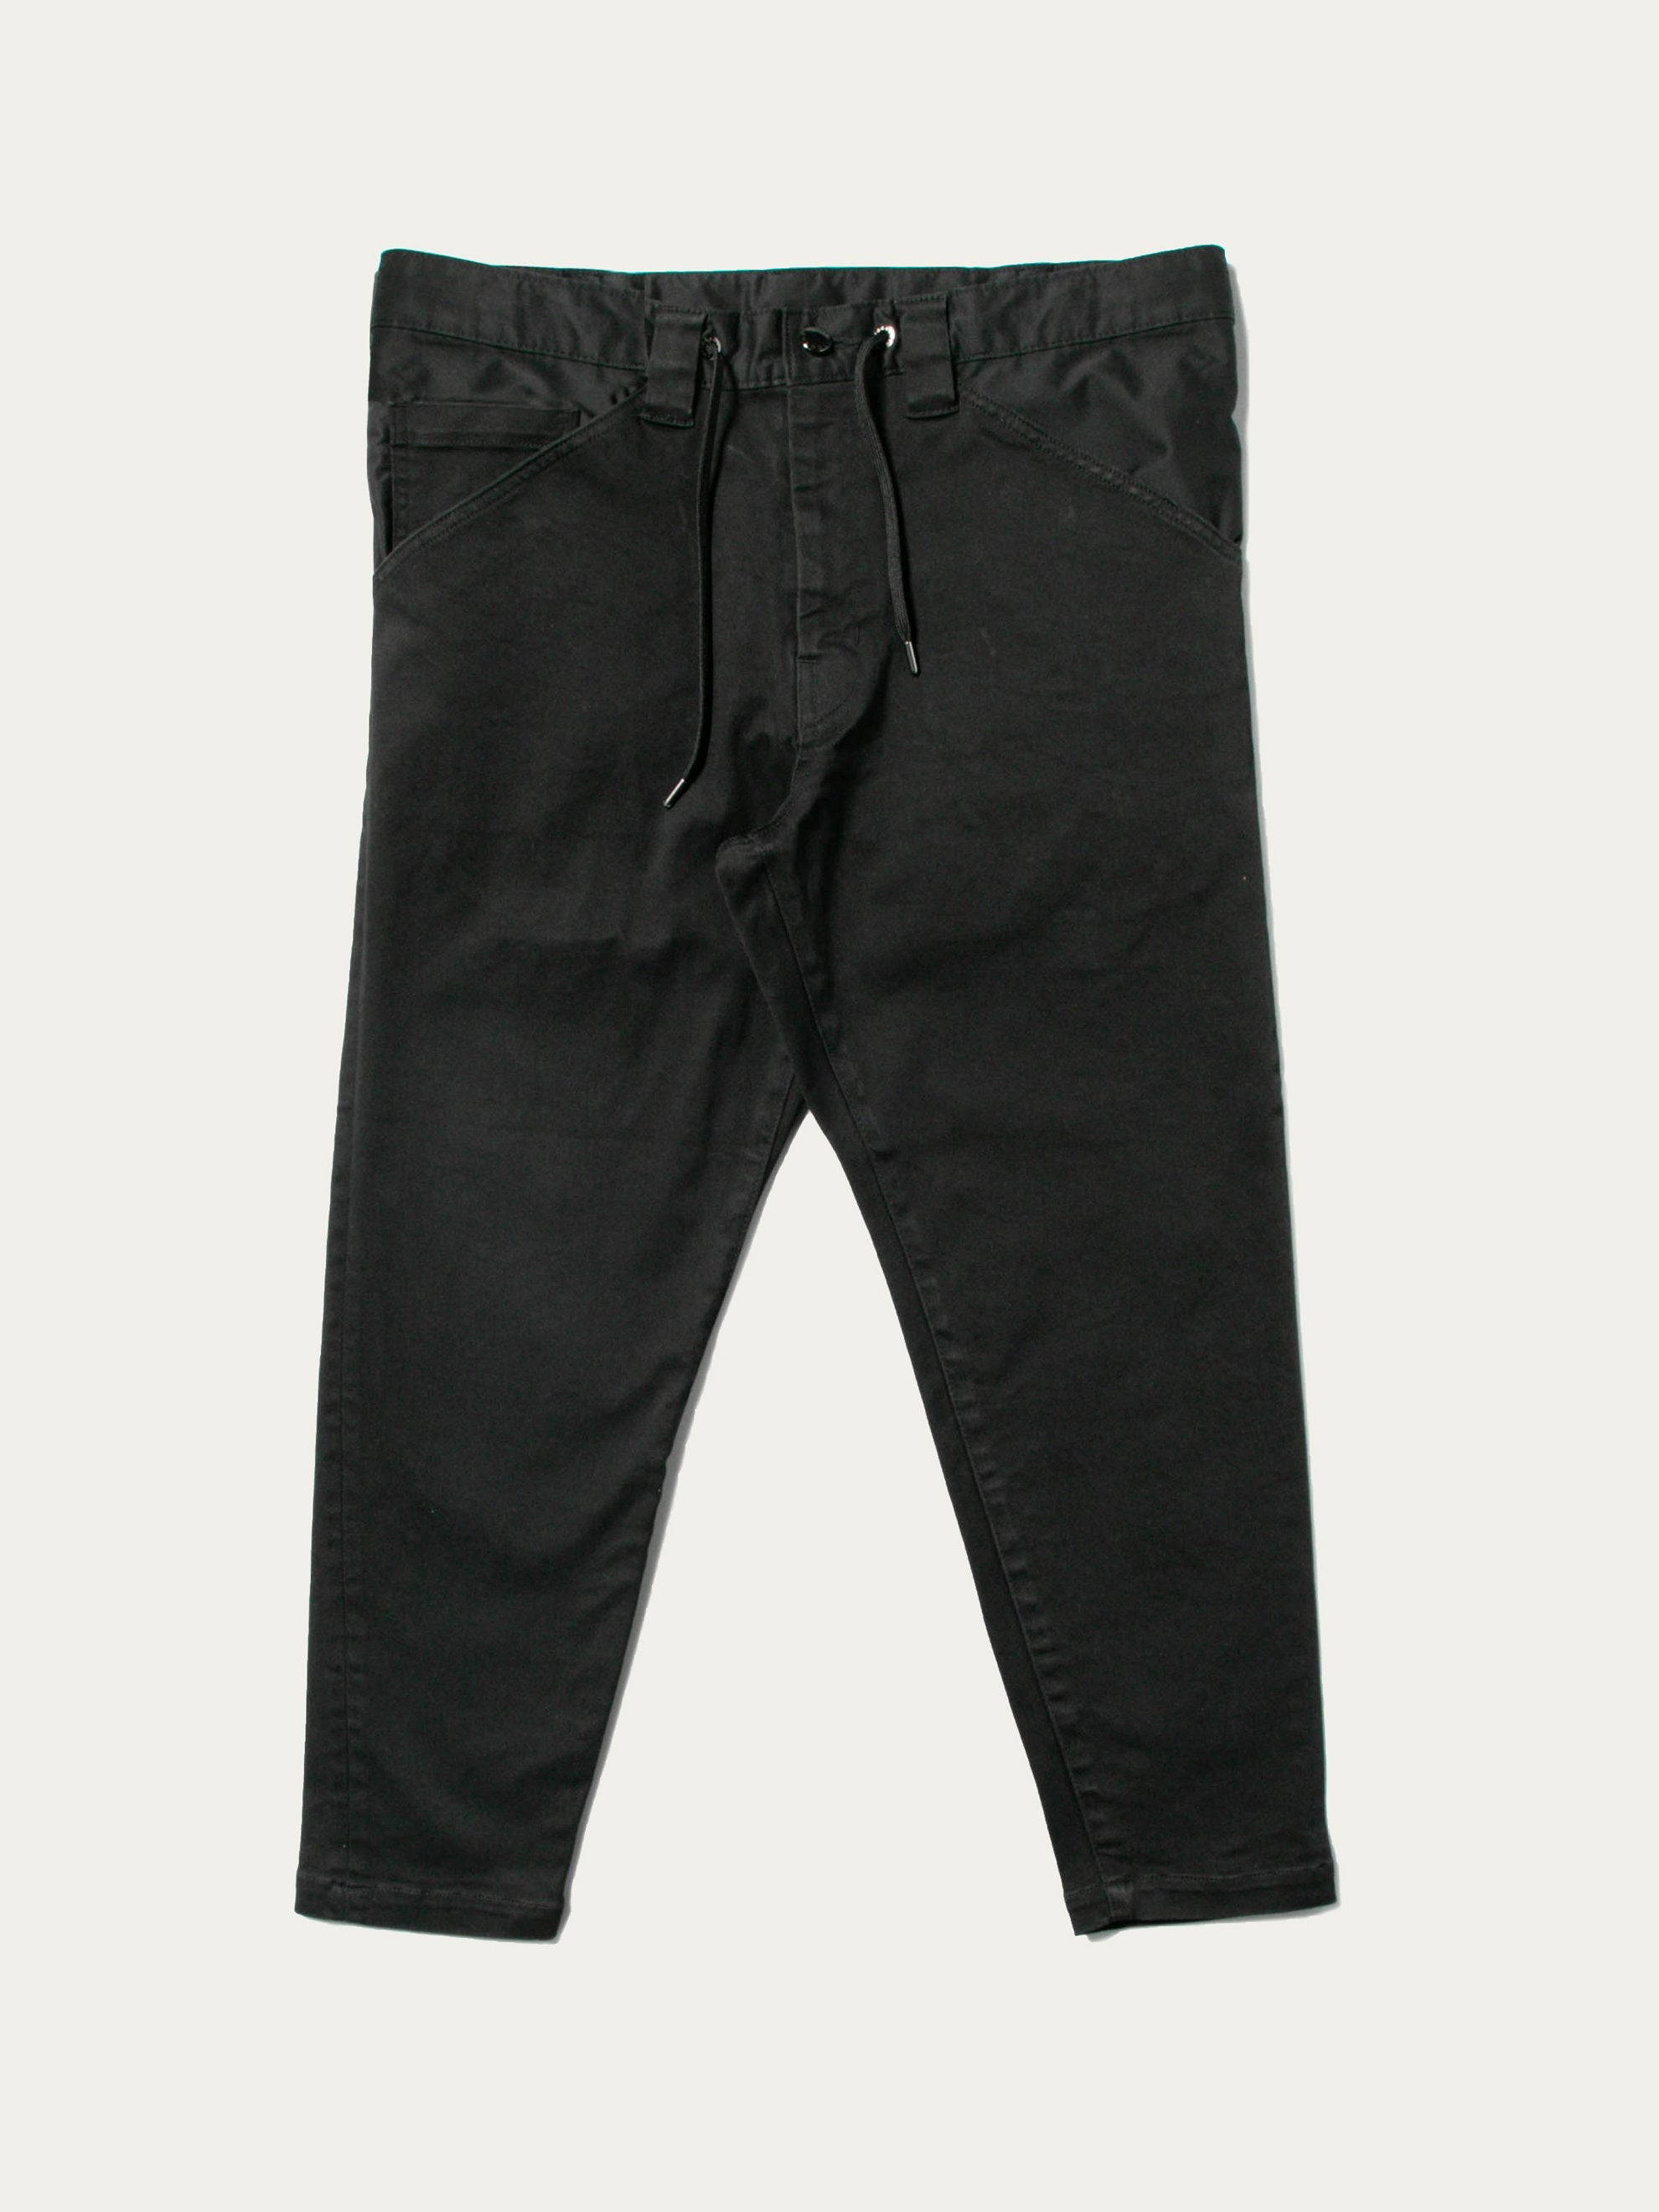 Black Twill 5-Pocket Drawstring Pants 1